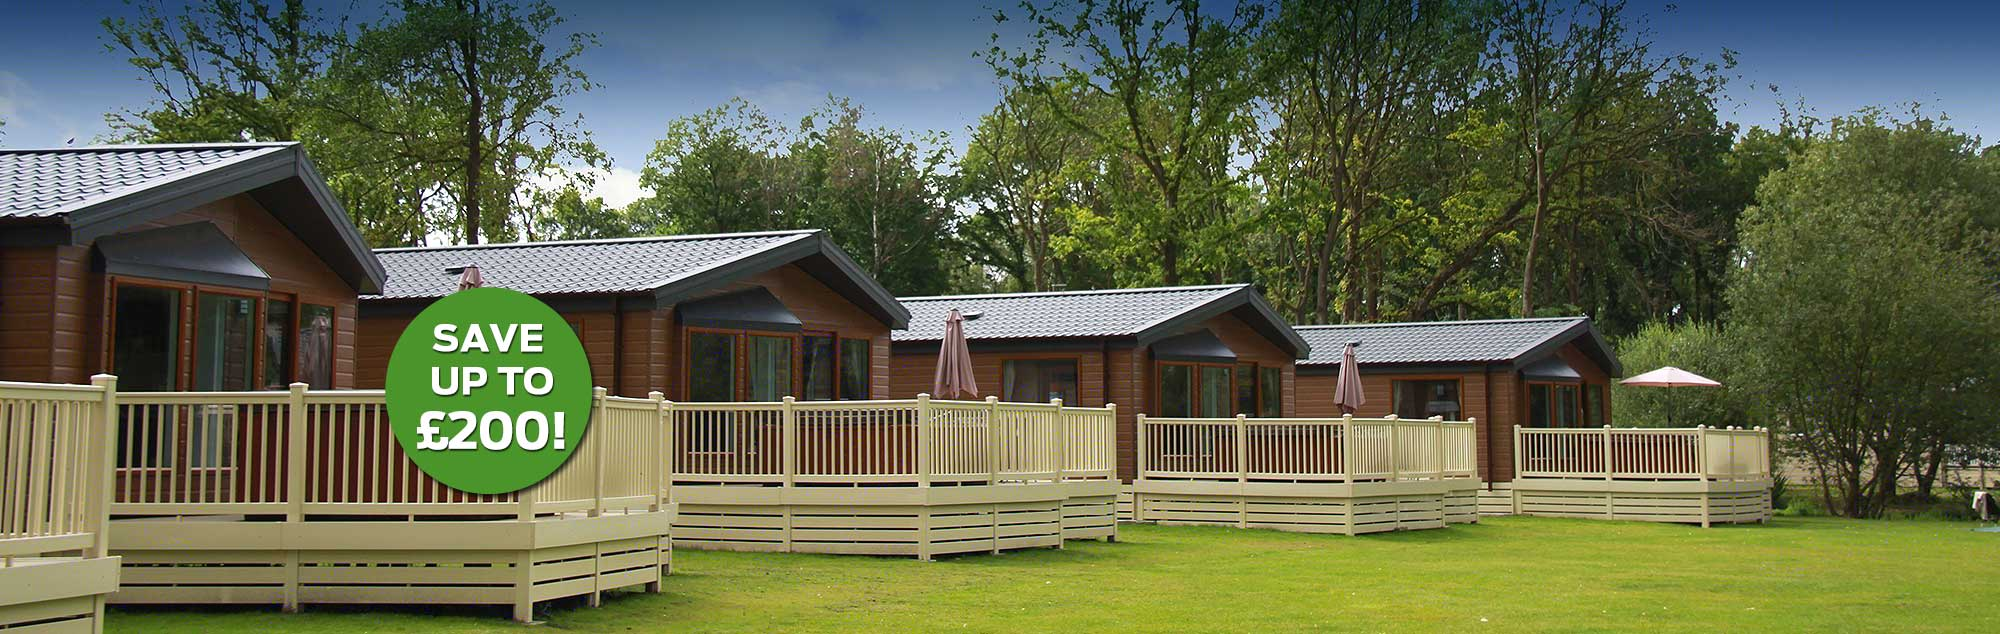 Luxury Lodges near York - Save up to £200